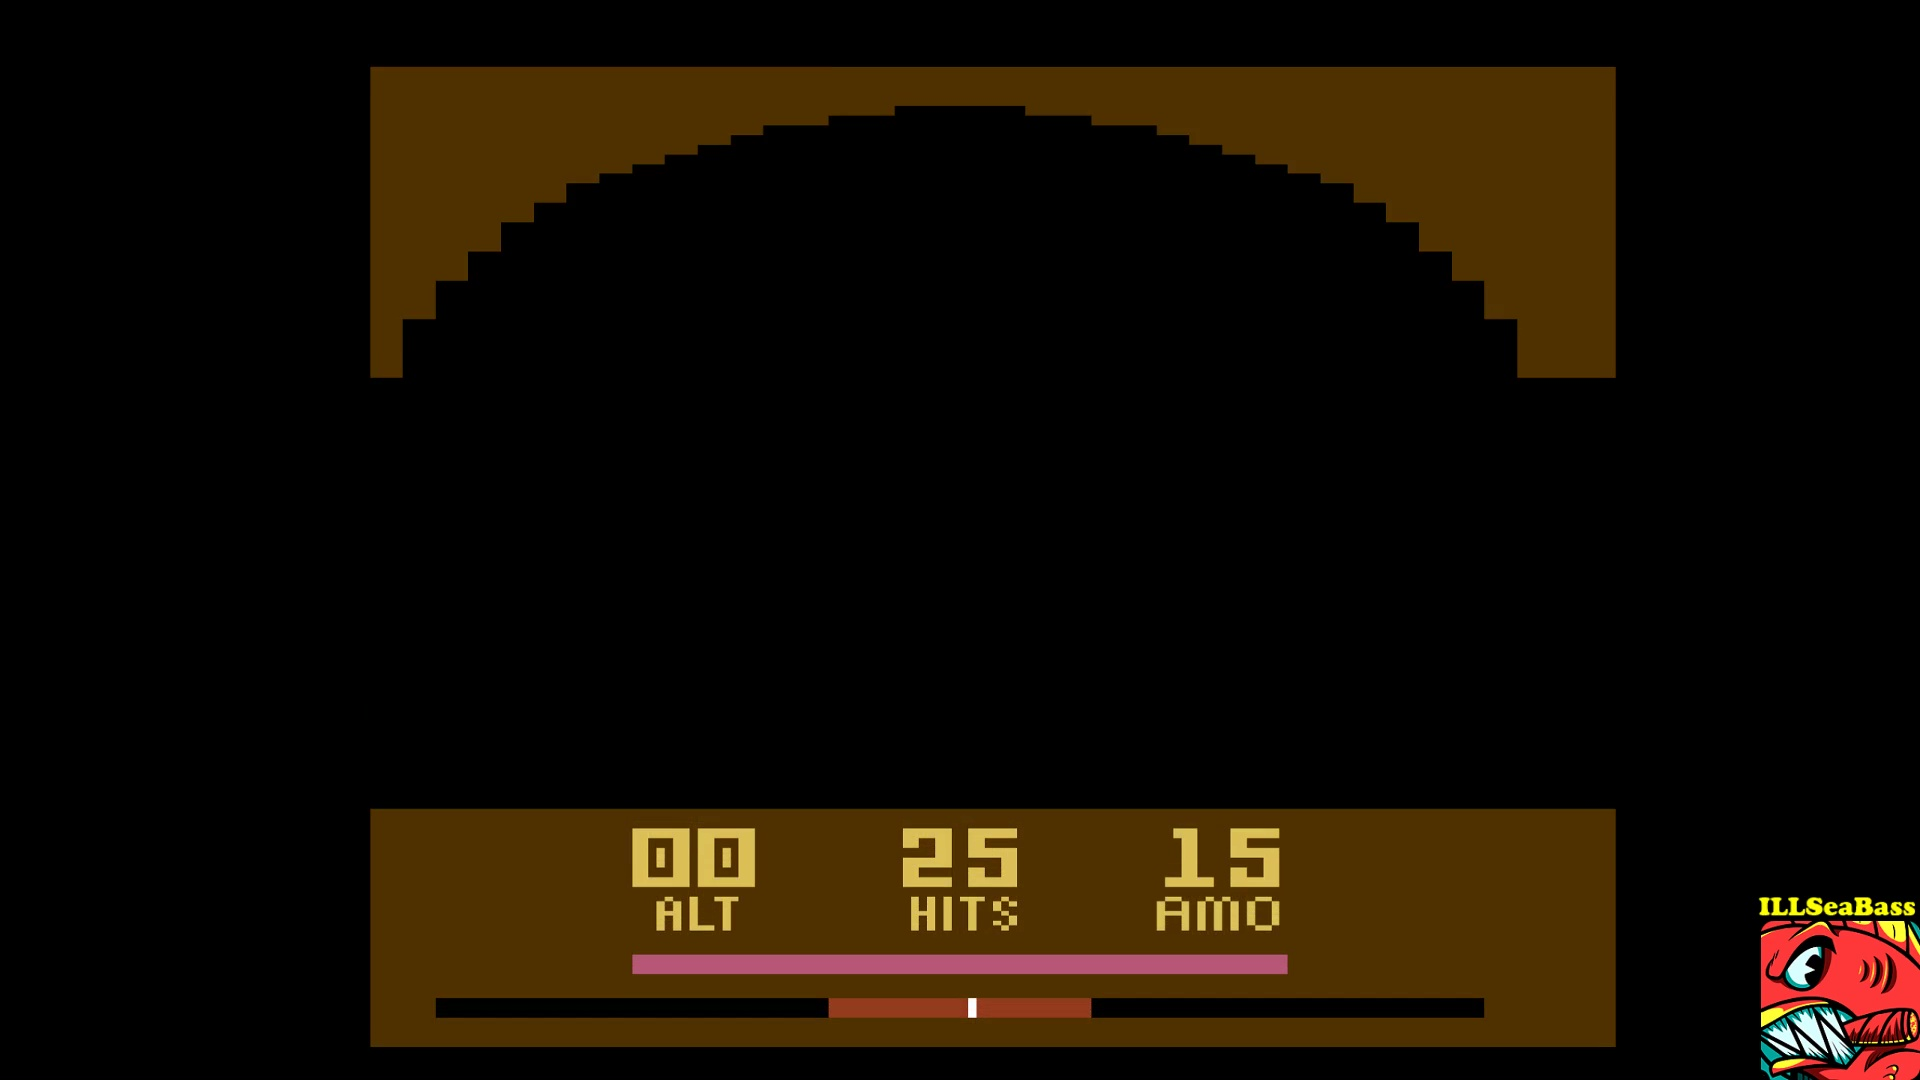 ILLSeaBass: Air Raiders (Atari 2600 Emulated Novice/B Mode) 25 points on 2017-09-29 20:07:40